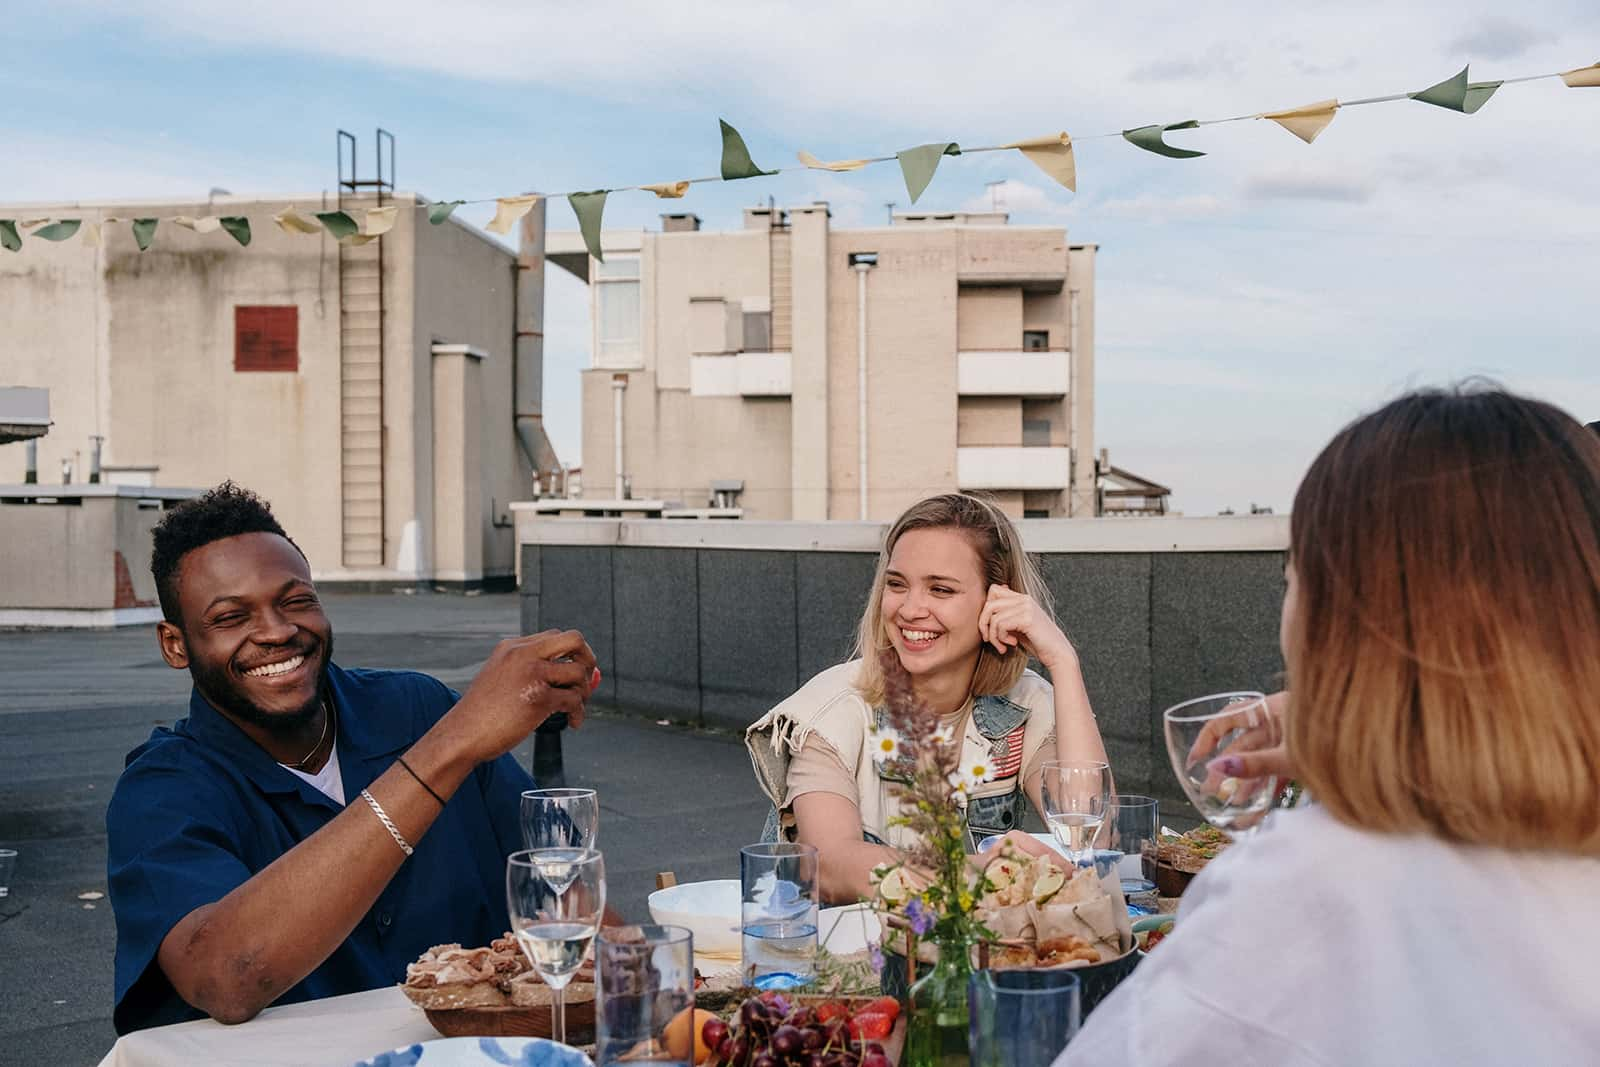 a group of friends having fun while sitting at the table at the party on the rooftop